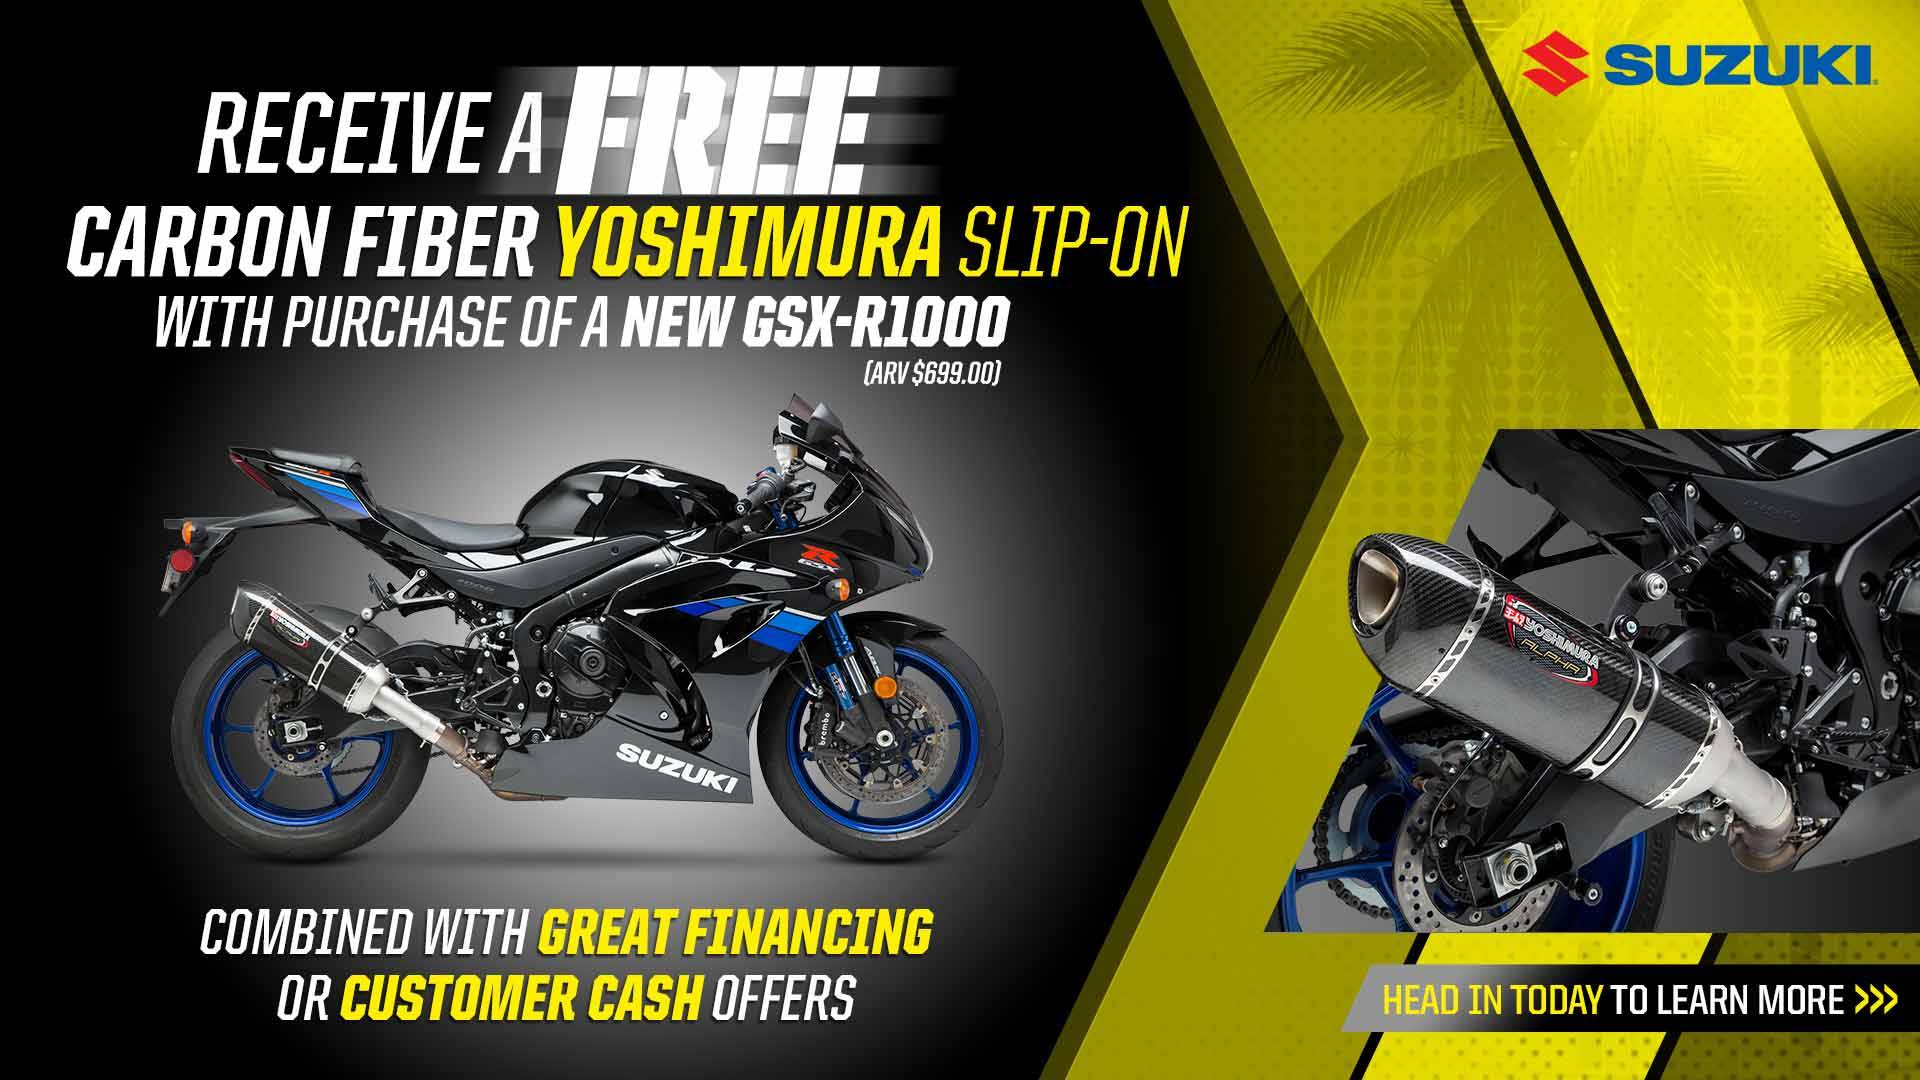 Suzuki - Summer Suzuki Fest for Sportbike and Standard